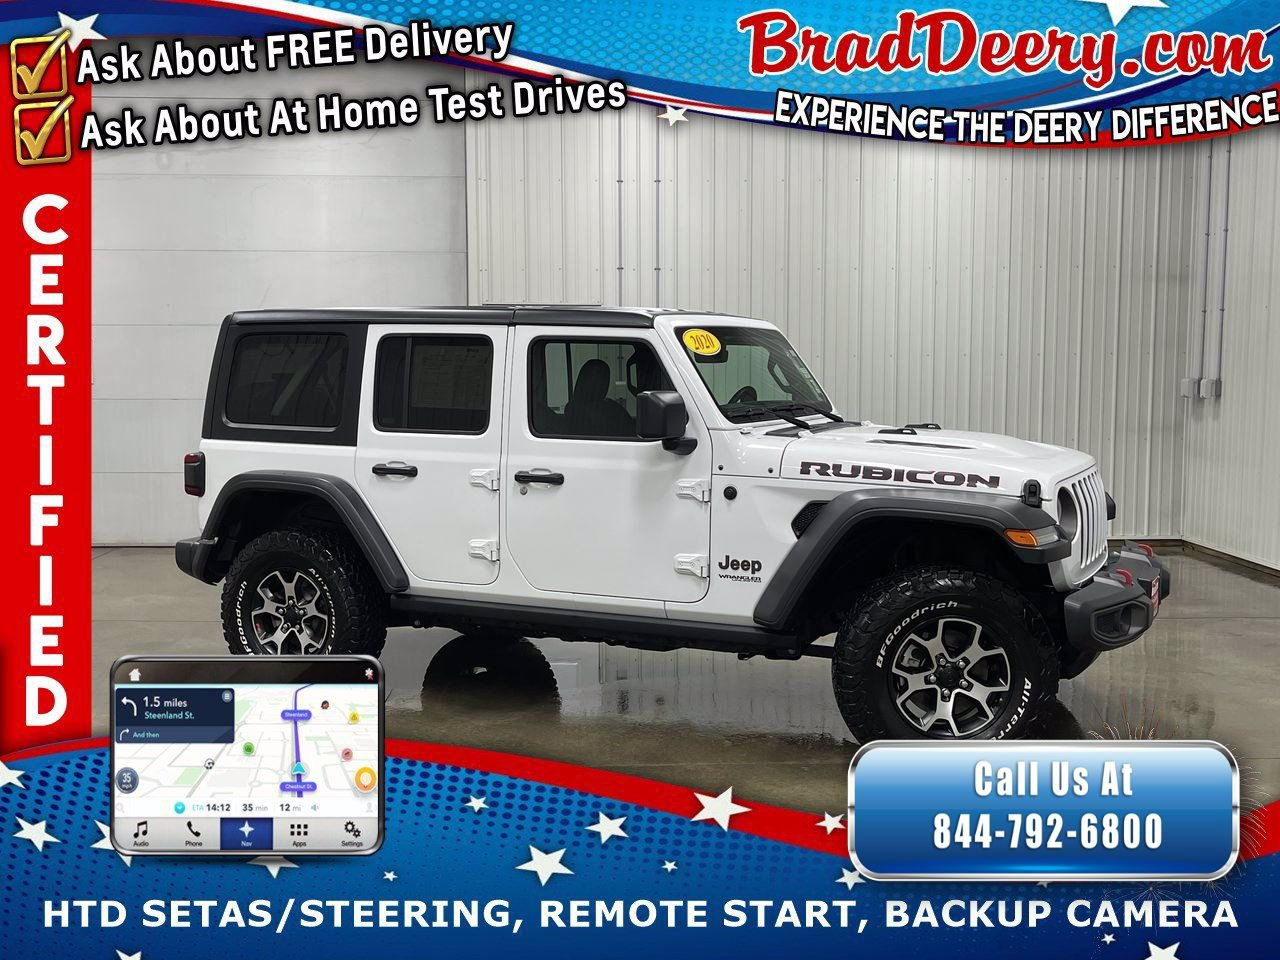 2020 Jeep Wrangler Unlimited 4-Door Rubicon 4x4   ** JEEP CERTIFIED ** w/ Heated Leather, Navigation, Remote Start & Back-Up Cam